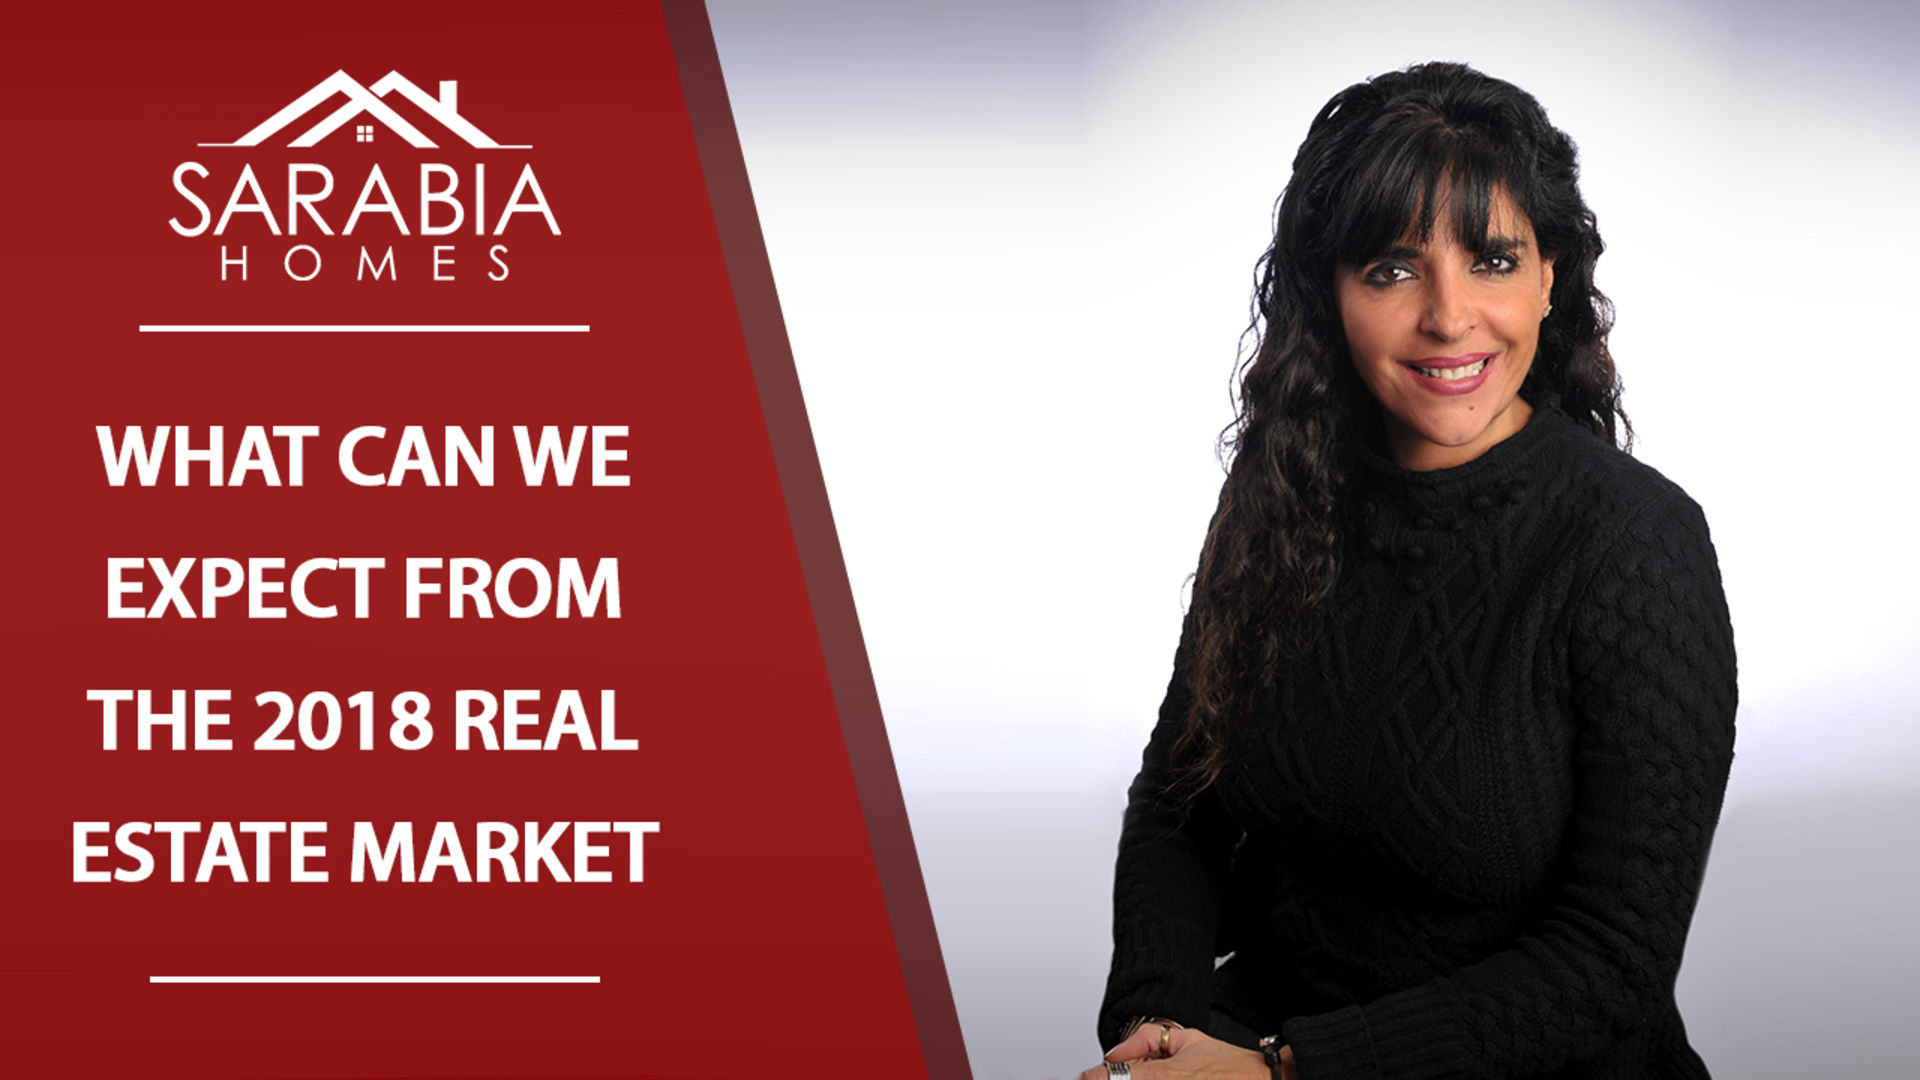 Two Game-Changing Topics in the Real Estate Industry